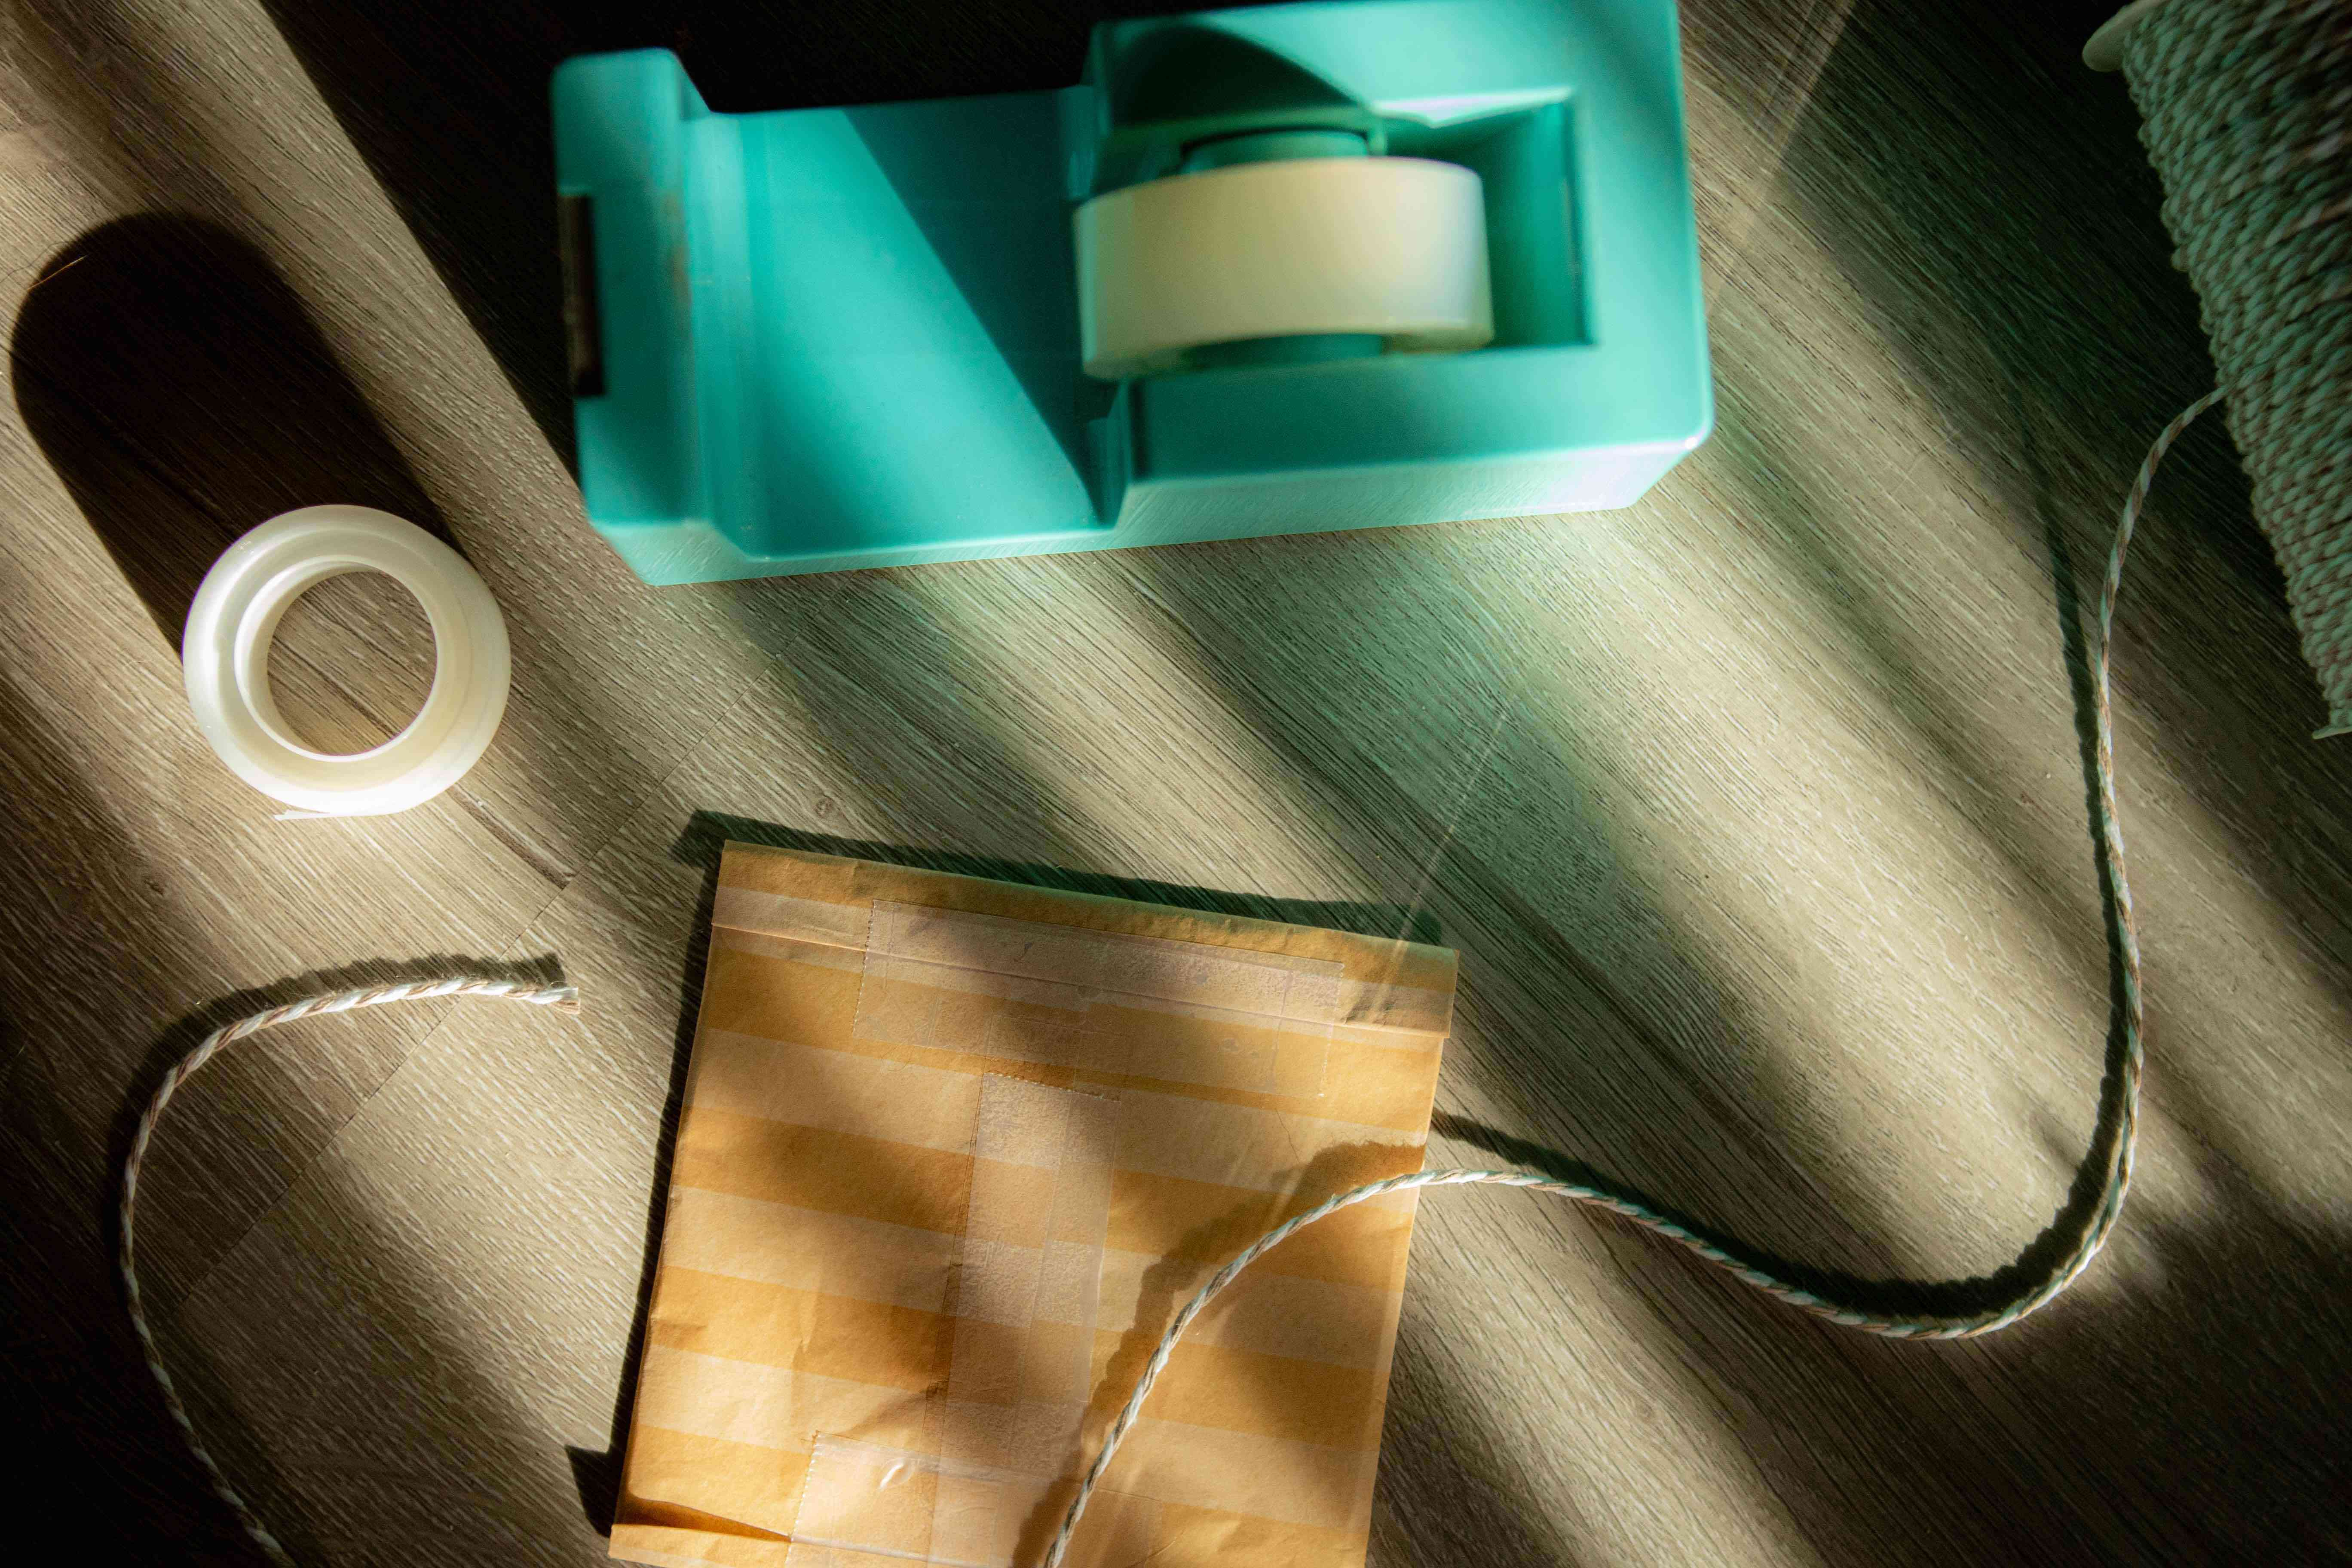 teal tape dispenser along with roll of plastic clear tape and flat package